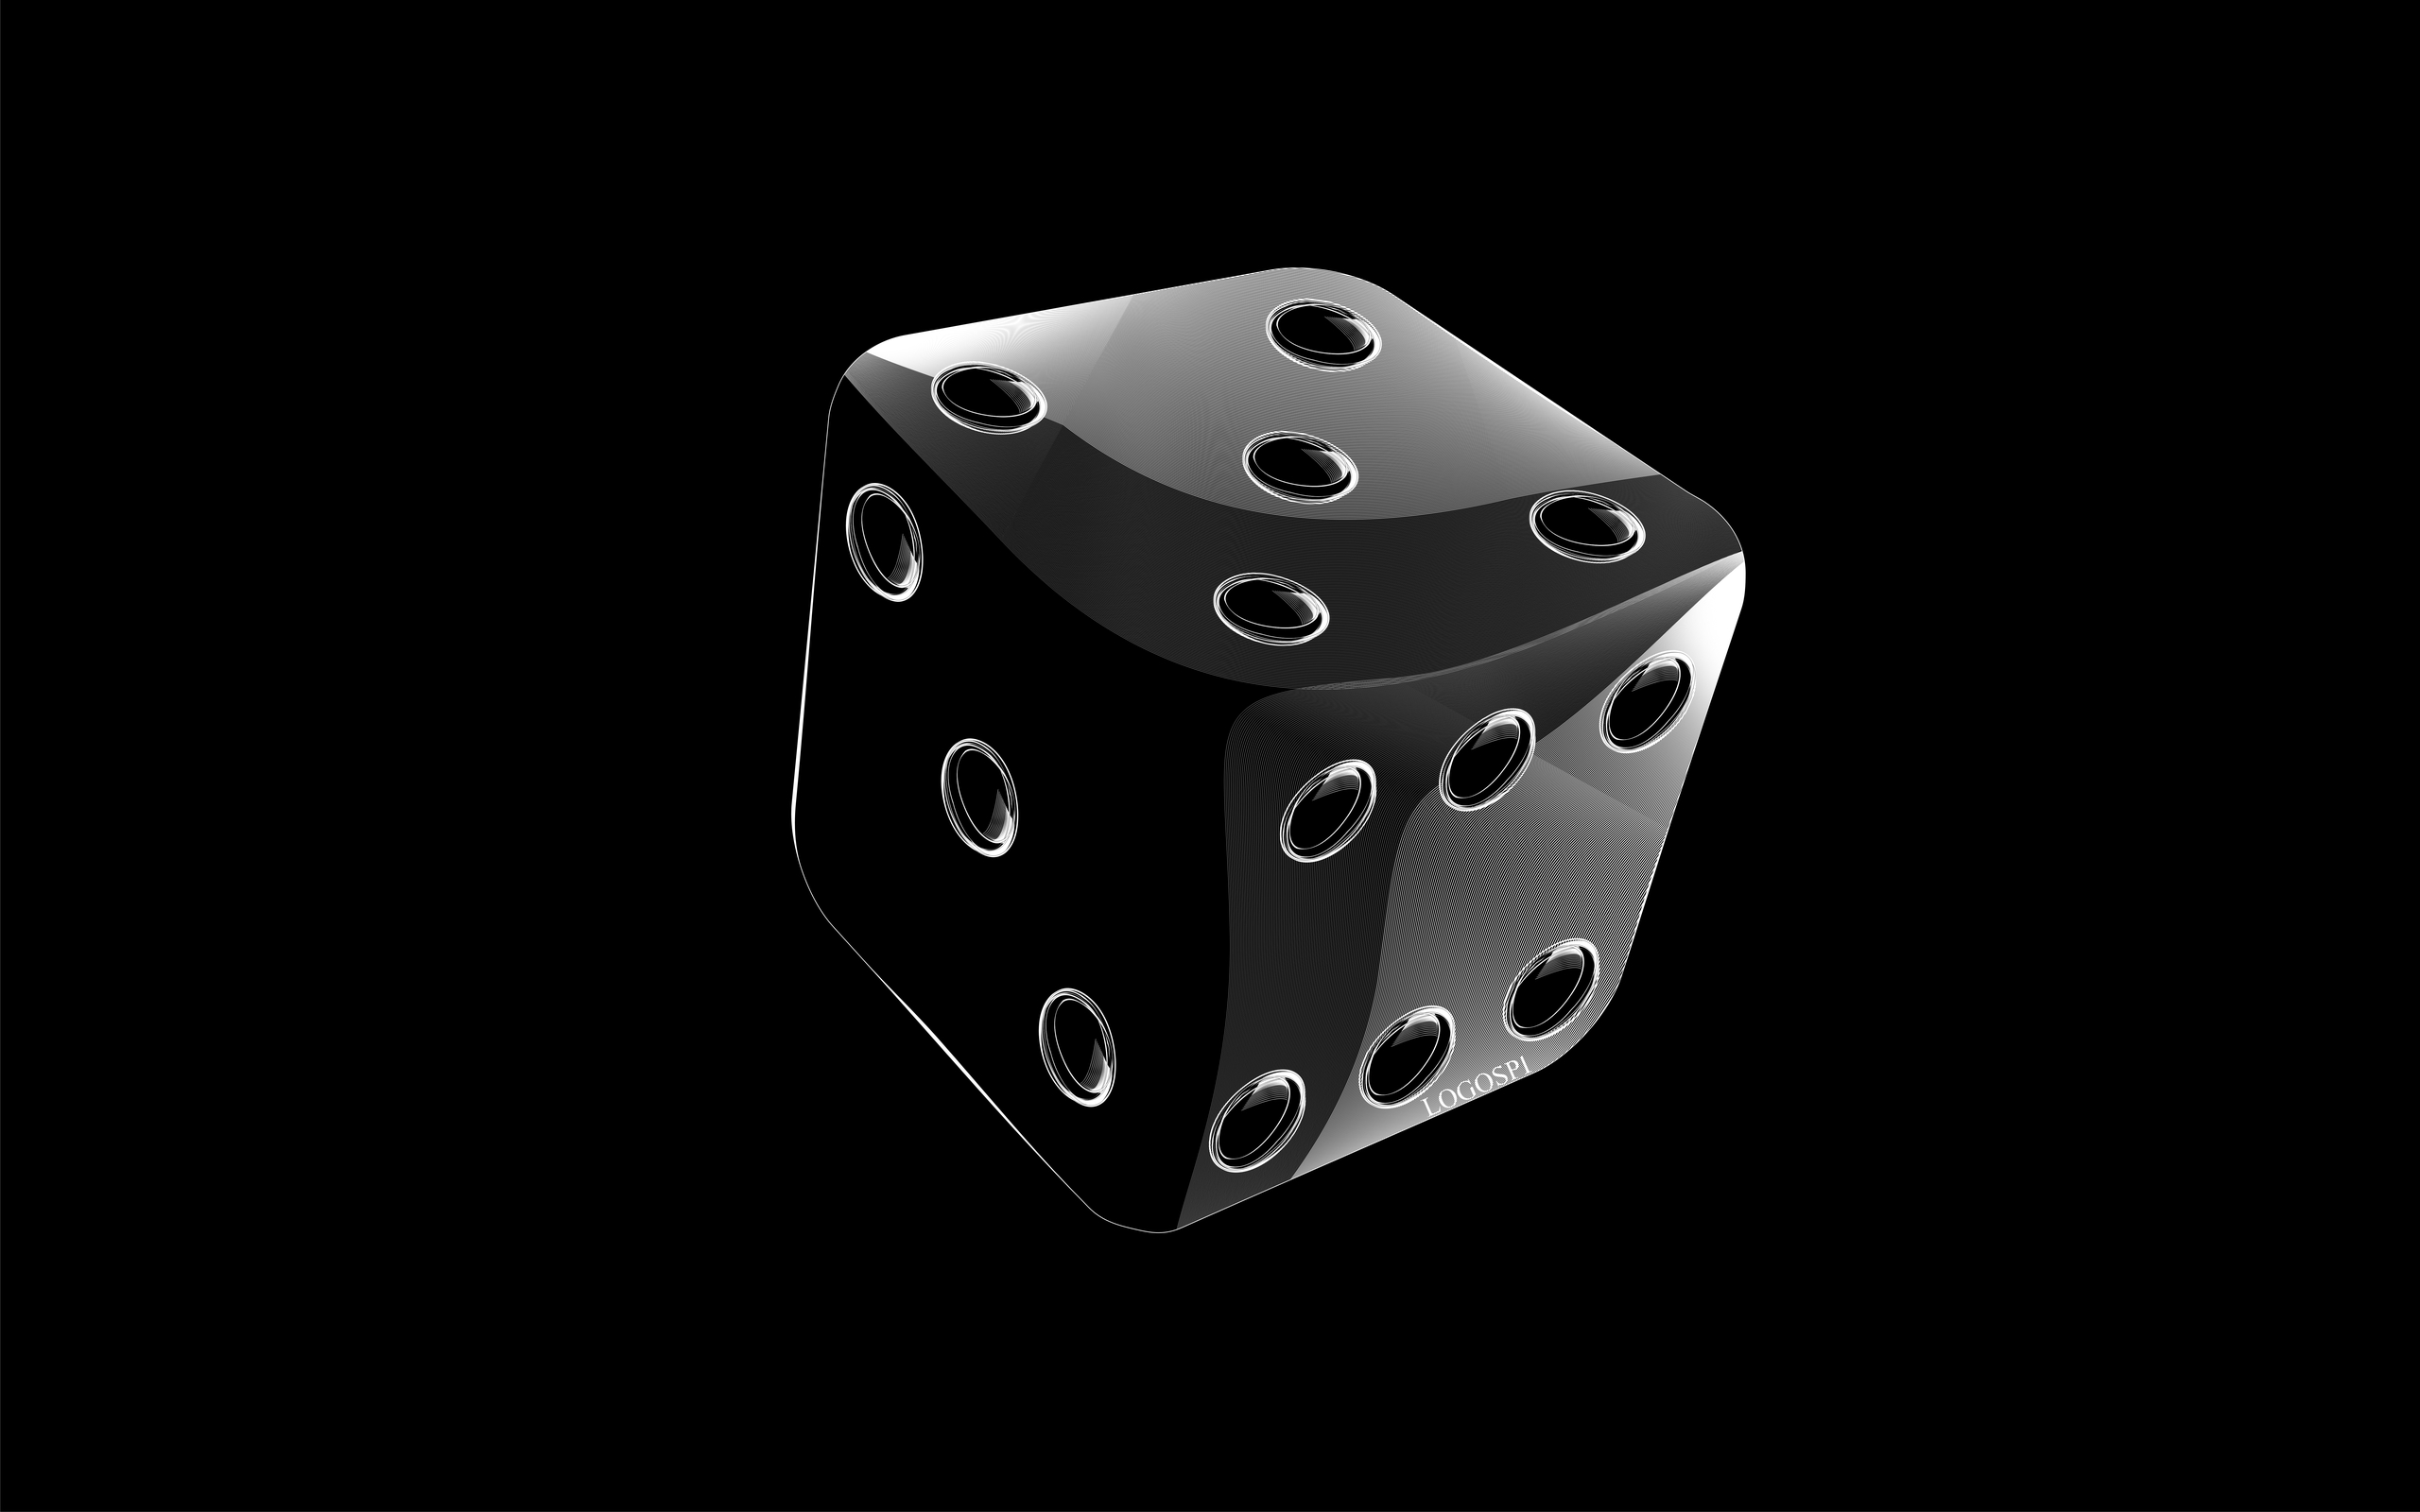 dice wallpapers dice stock photos